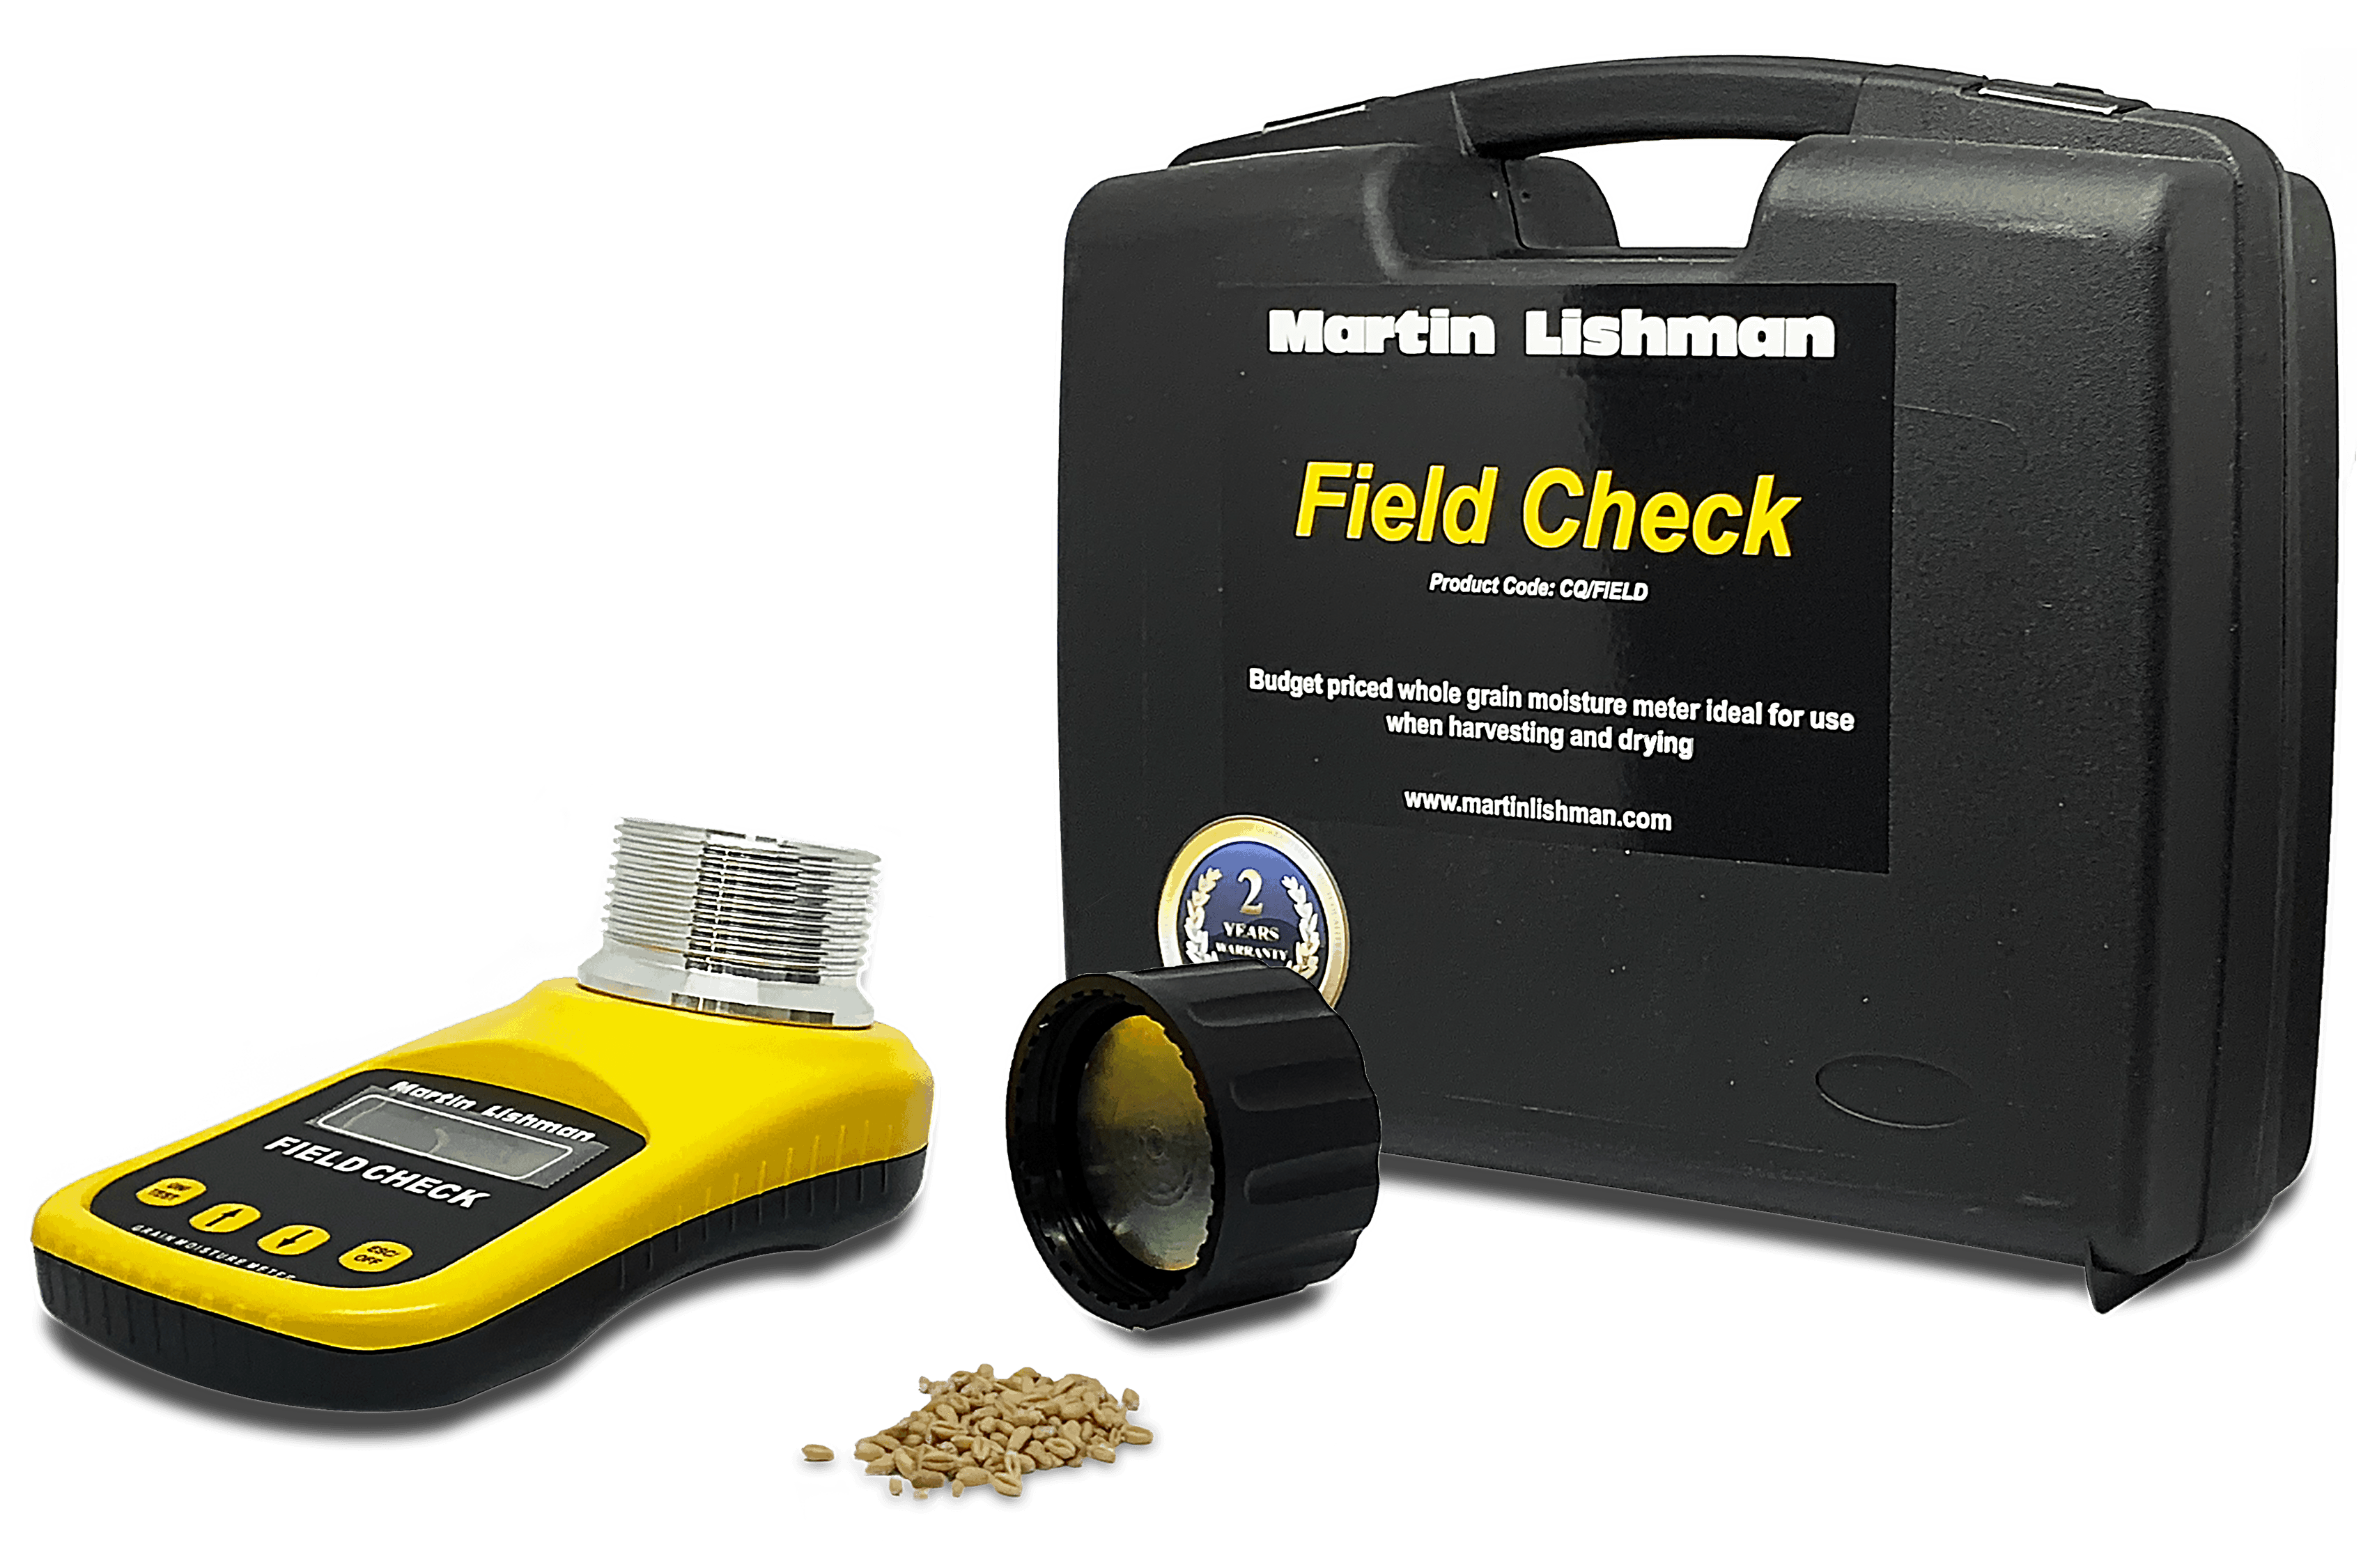 Martin Lishman field check moisture meter is ideal to leave in the combine for quick testing